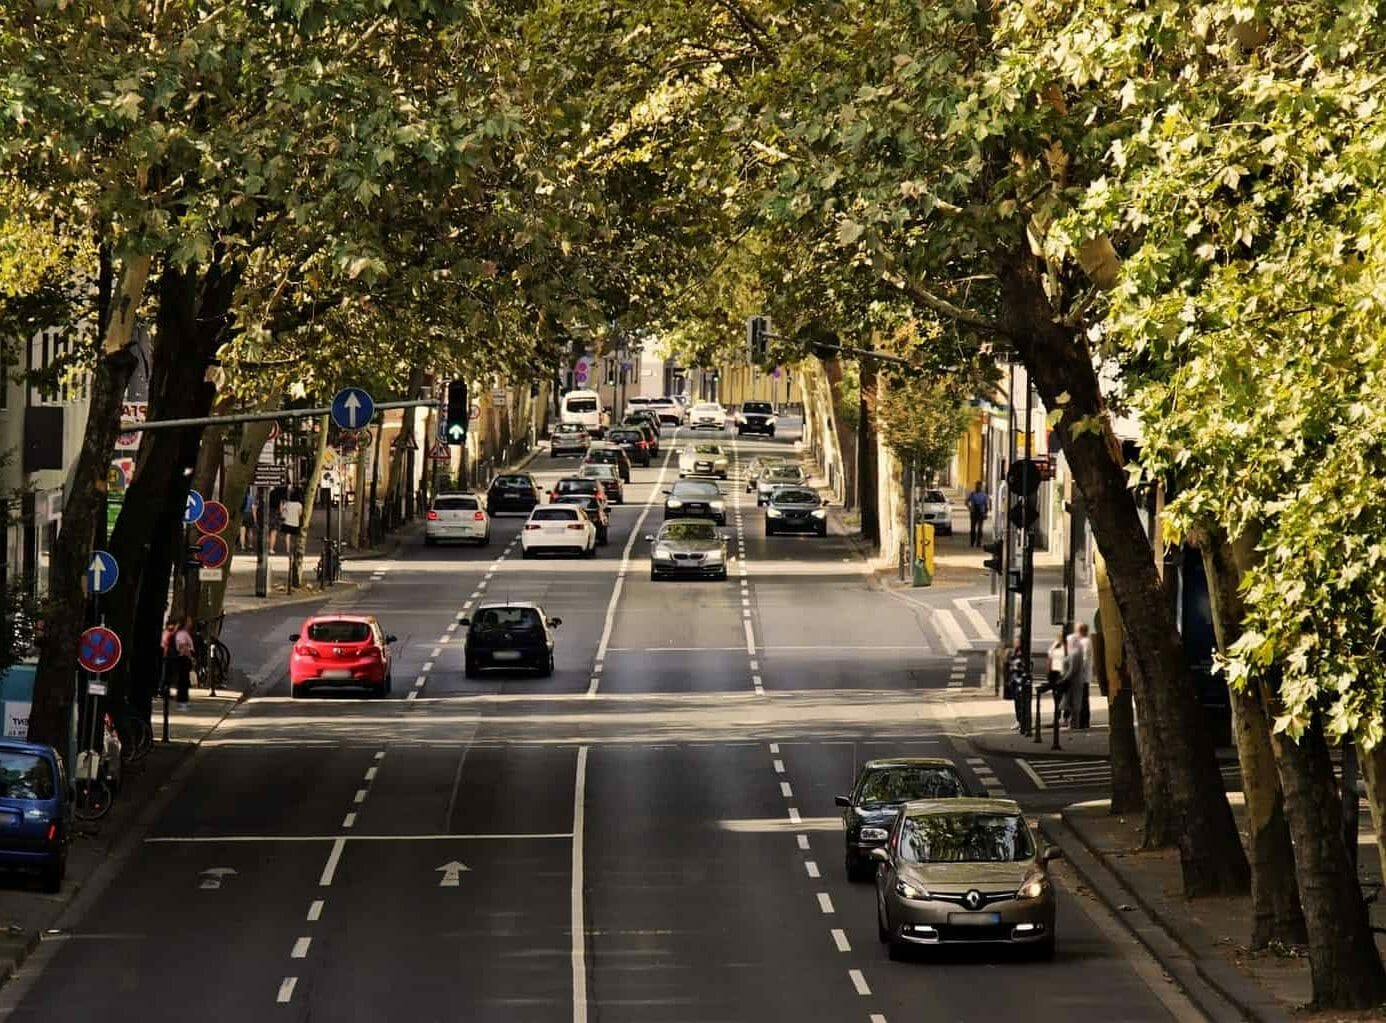 A tree lined street with cars in a city